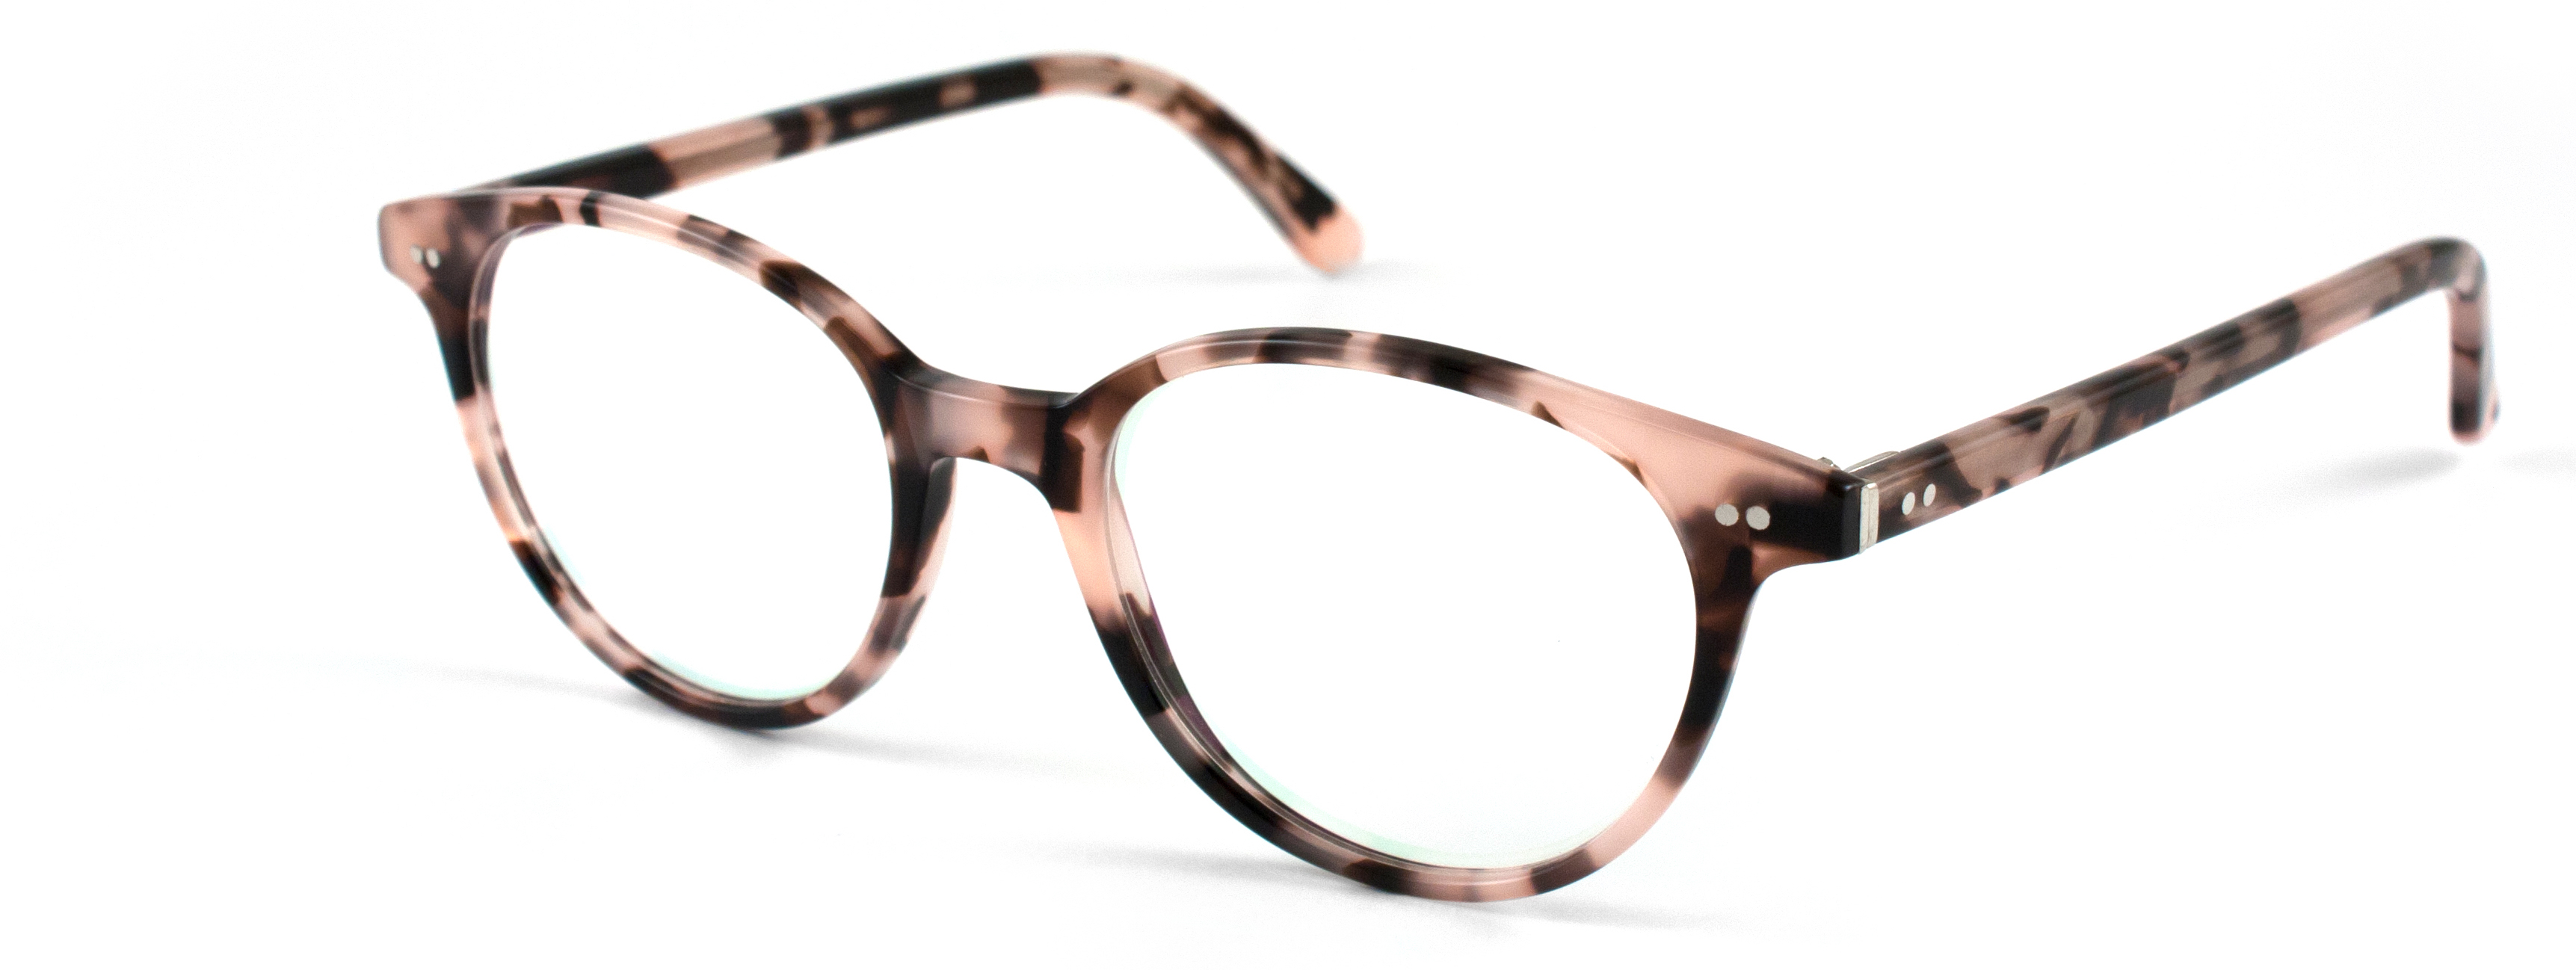 charles stone brille muenchen - Charles Stone